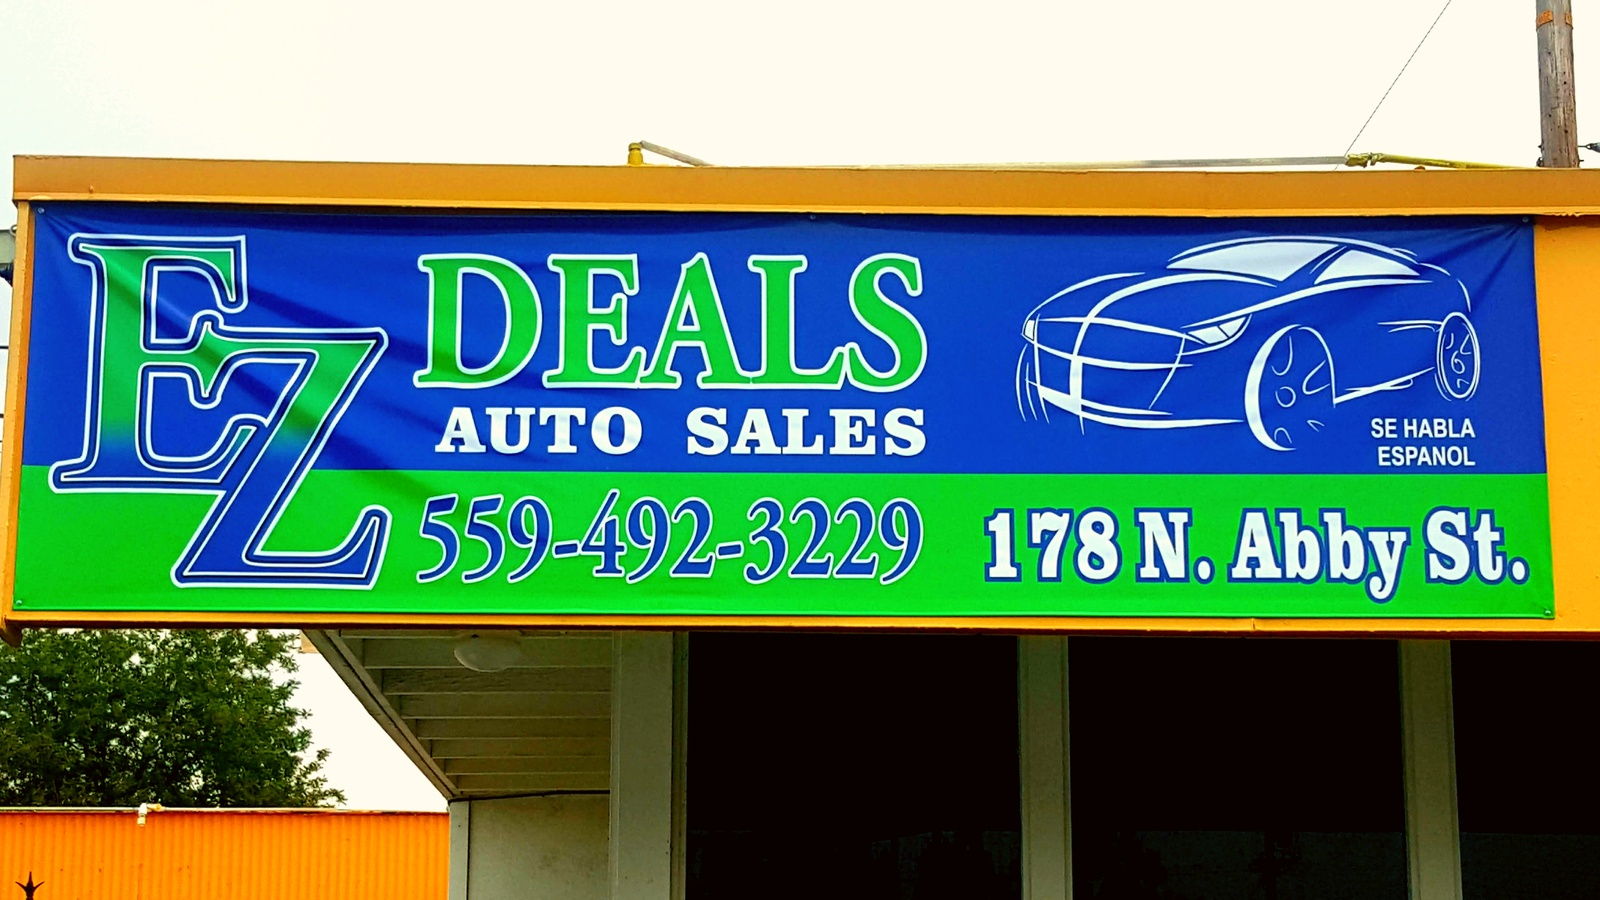 EZ Deals Auto Sales - Fresno, CA: Read Consumer reviews ...